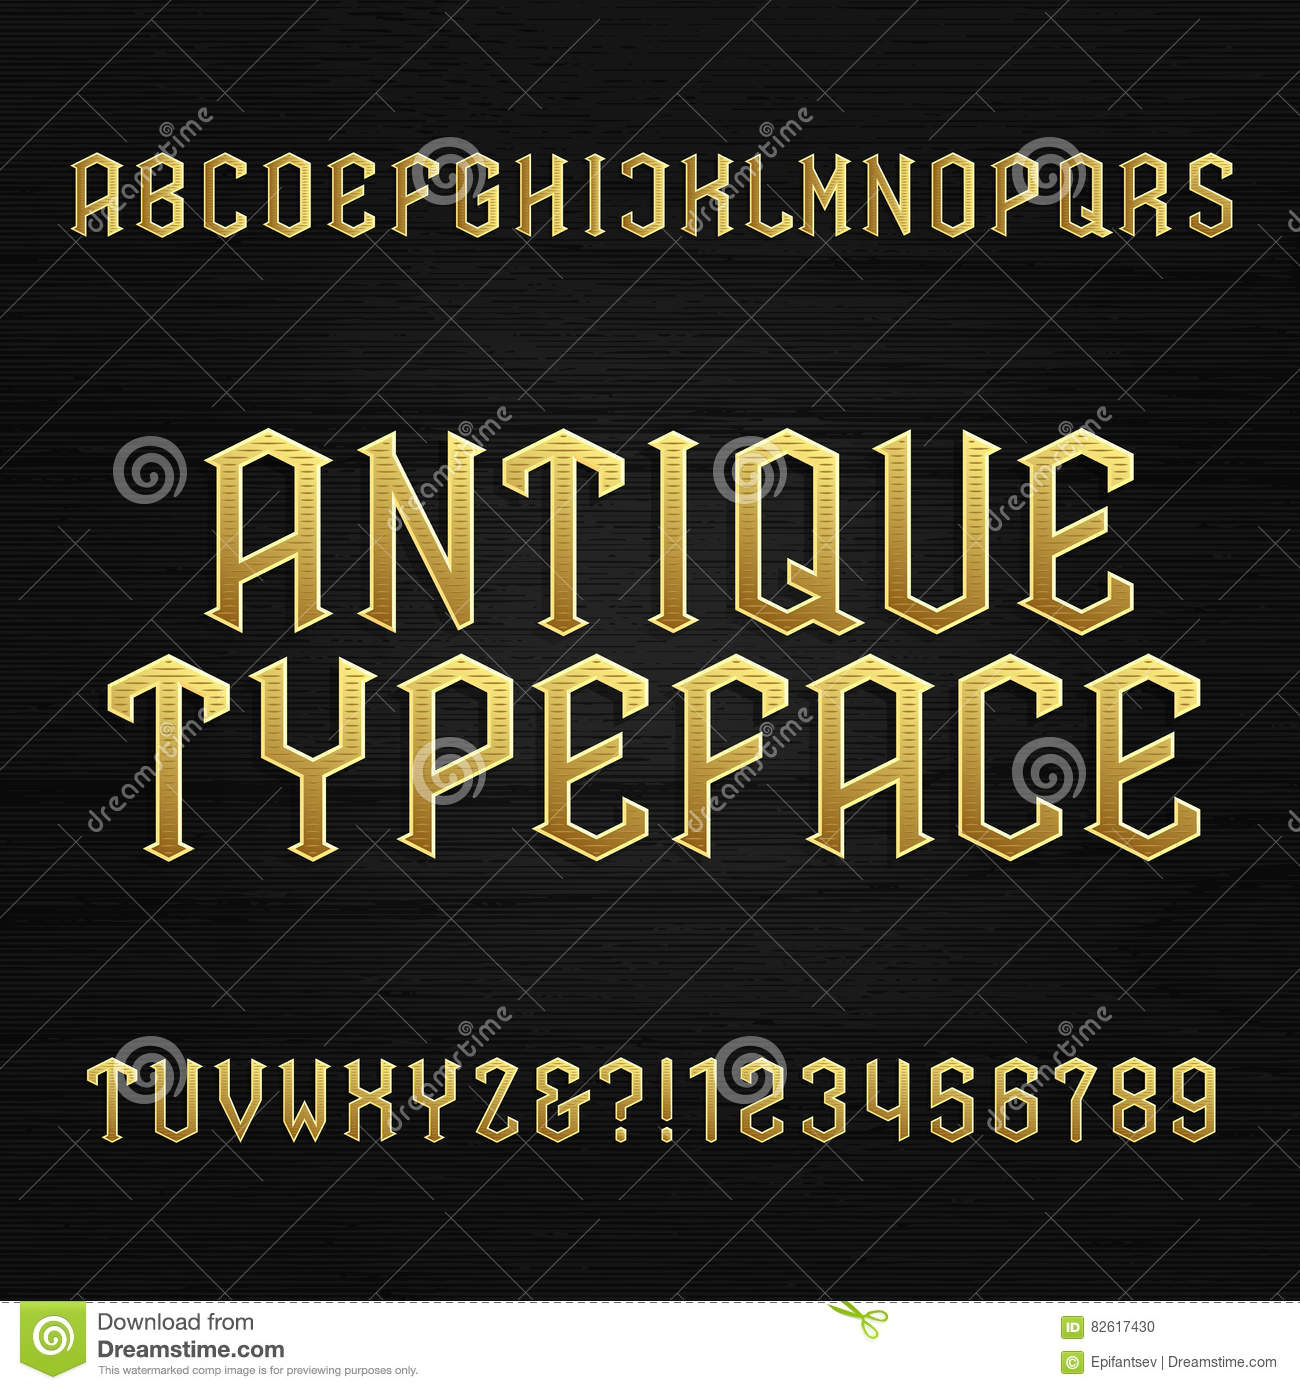 Download Antique Alphabet Vector Font. Type Letters Symbols And Numbers On A Wooden Background. Stock Vector - Illustration of distressed, retro: 82617430